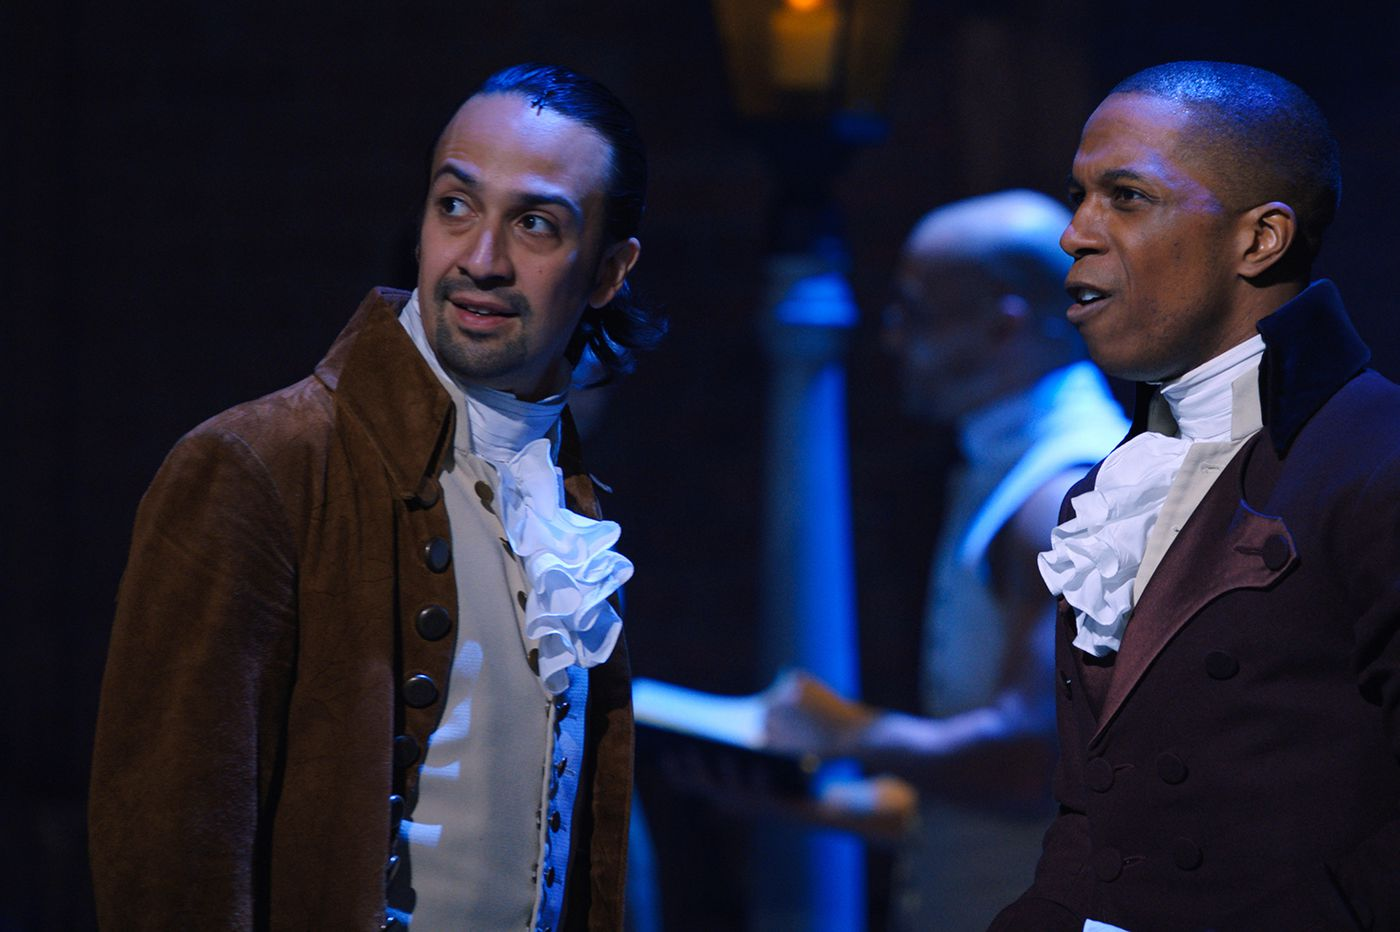 Is 'Hamilton' the next victim of our ruthless new cancel culture? | Opinion